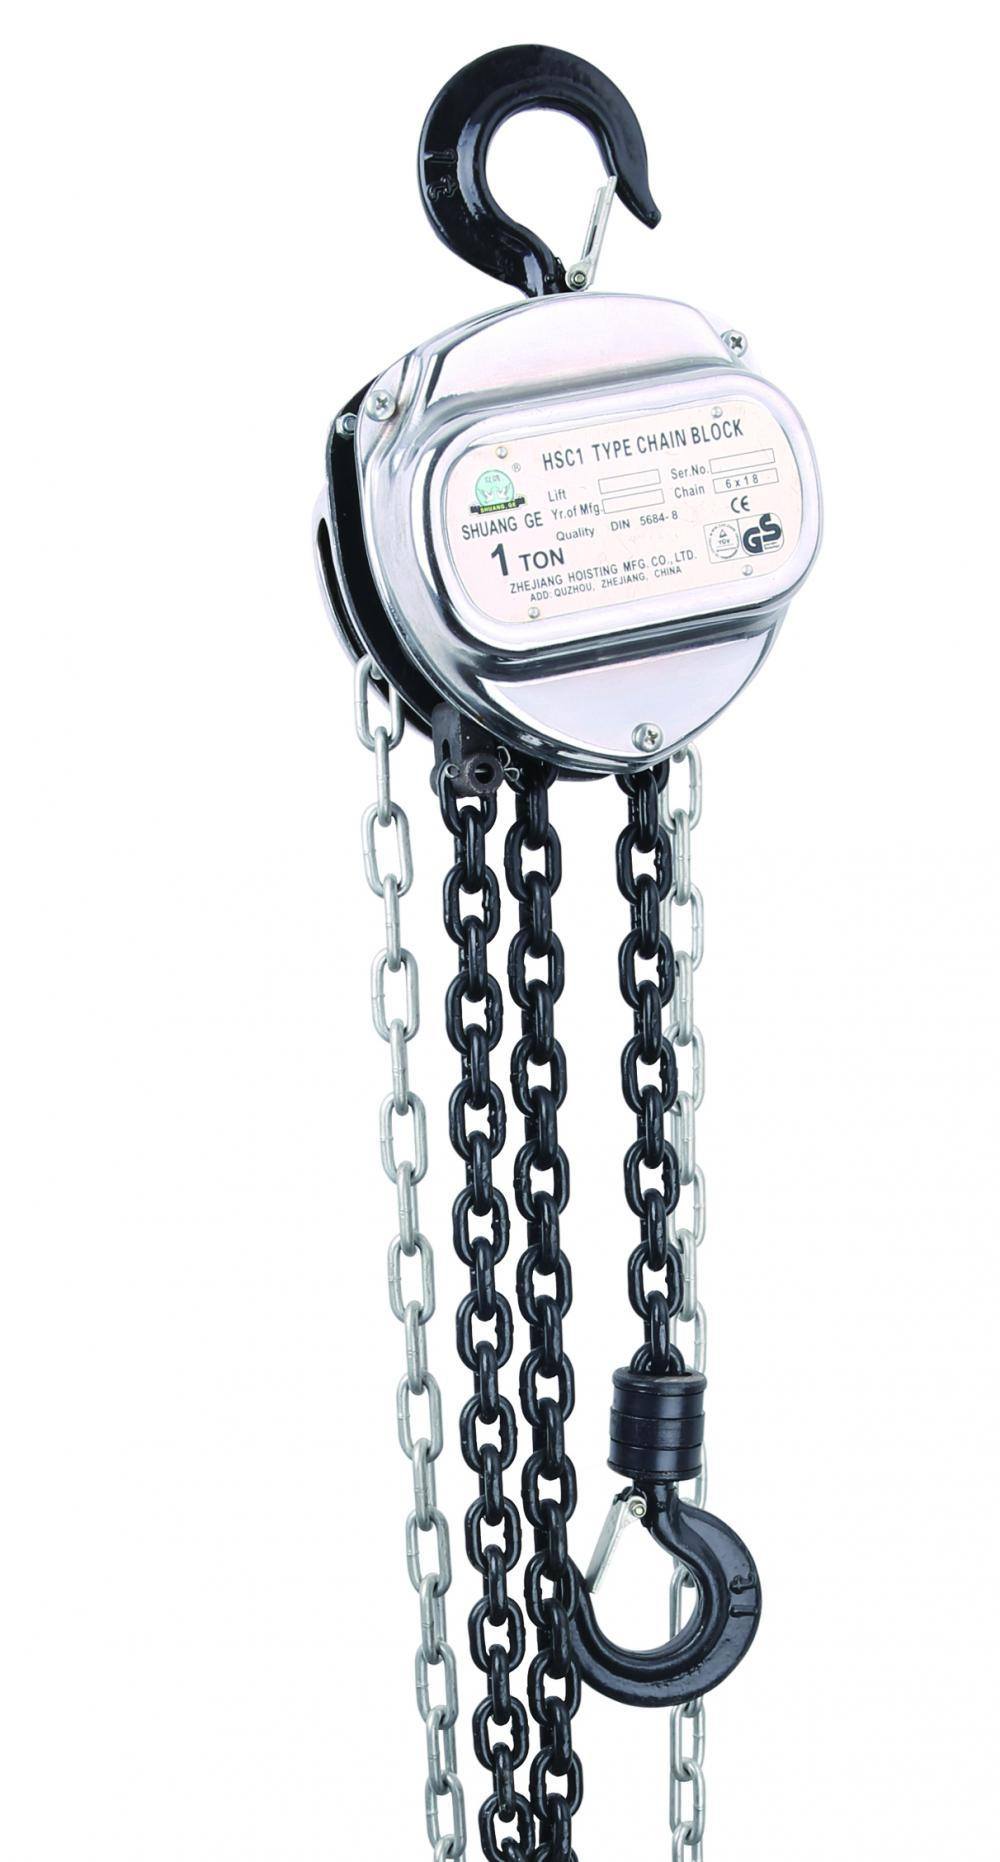 HSC TYPE CHAIN HOIST WITH NICKLE PAINT